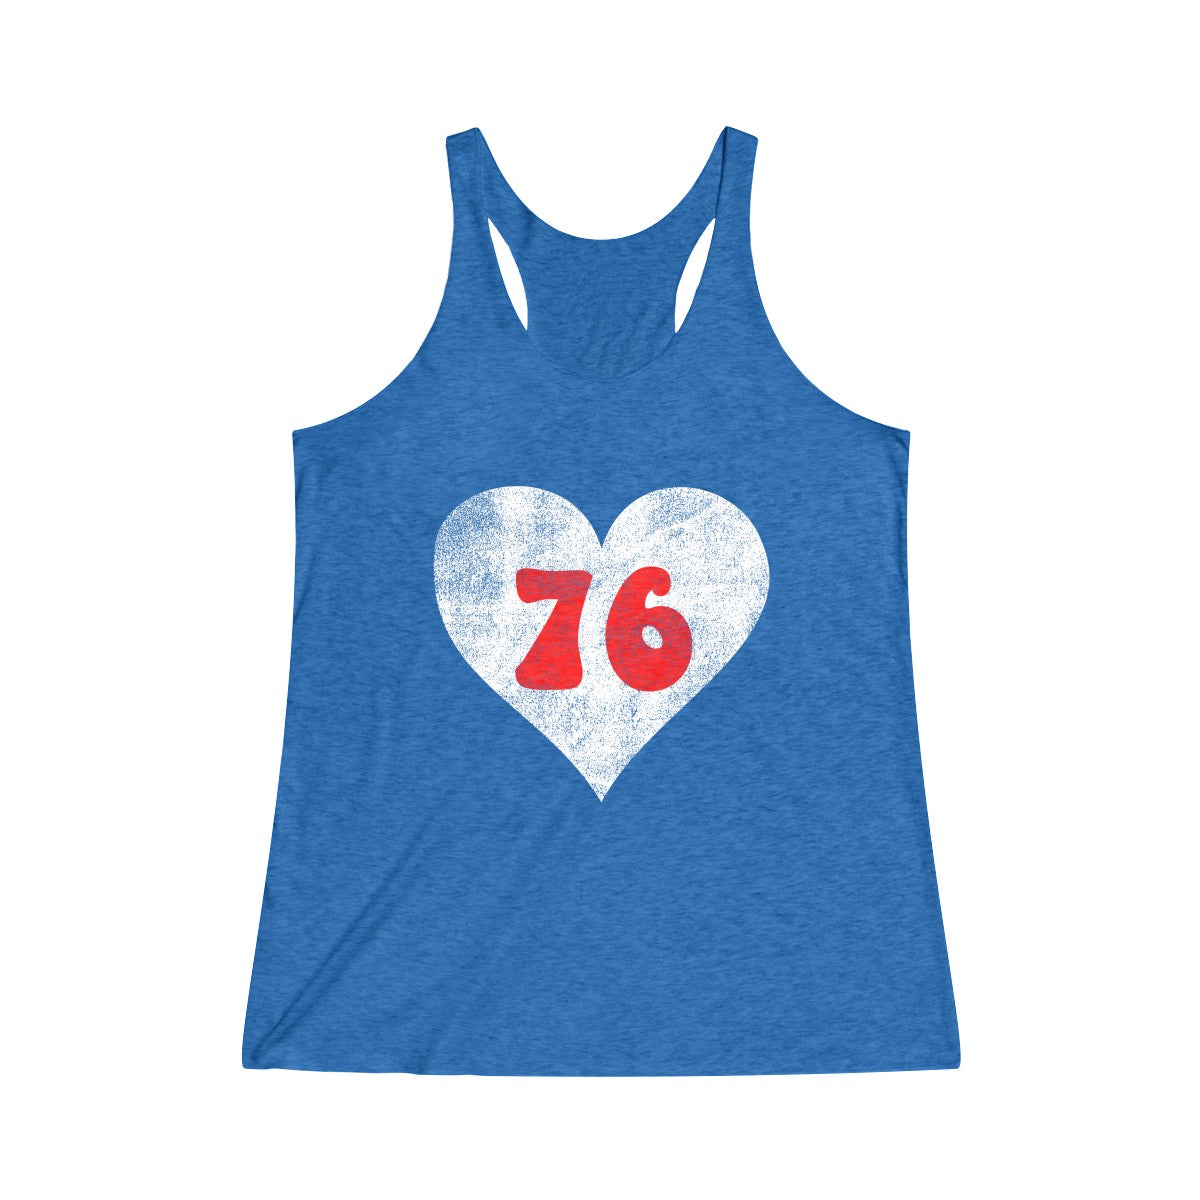 Philly 76 Love Royal Women's Tri-Blend Racerback Tank